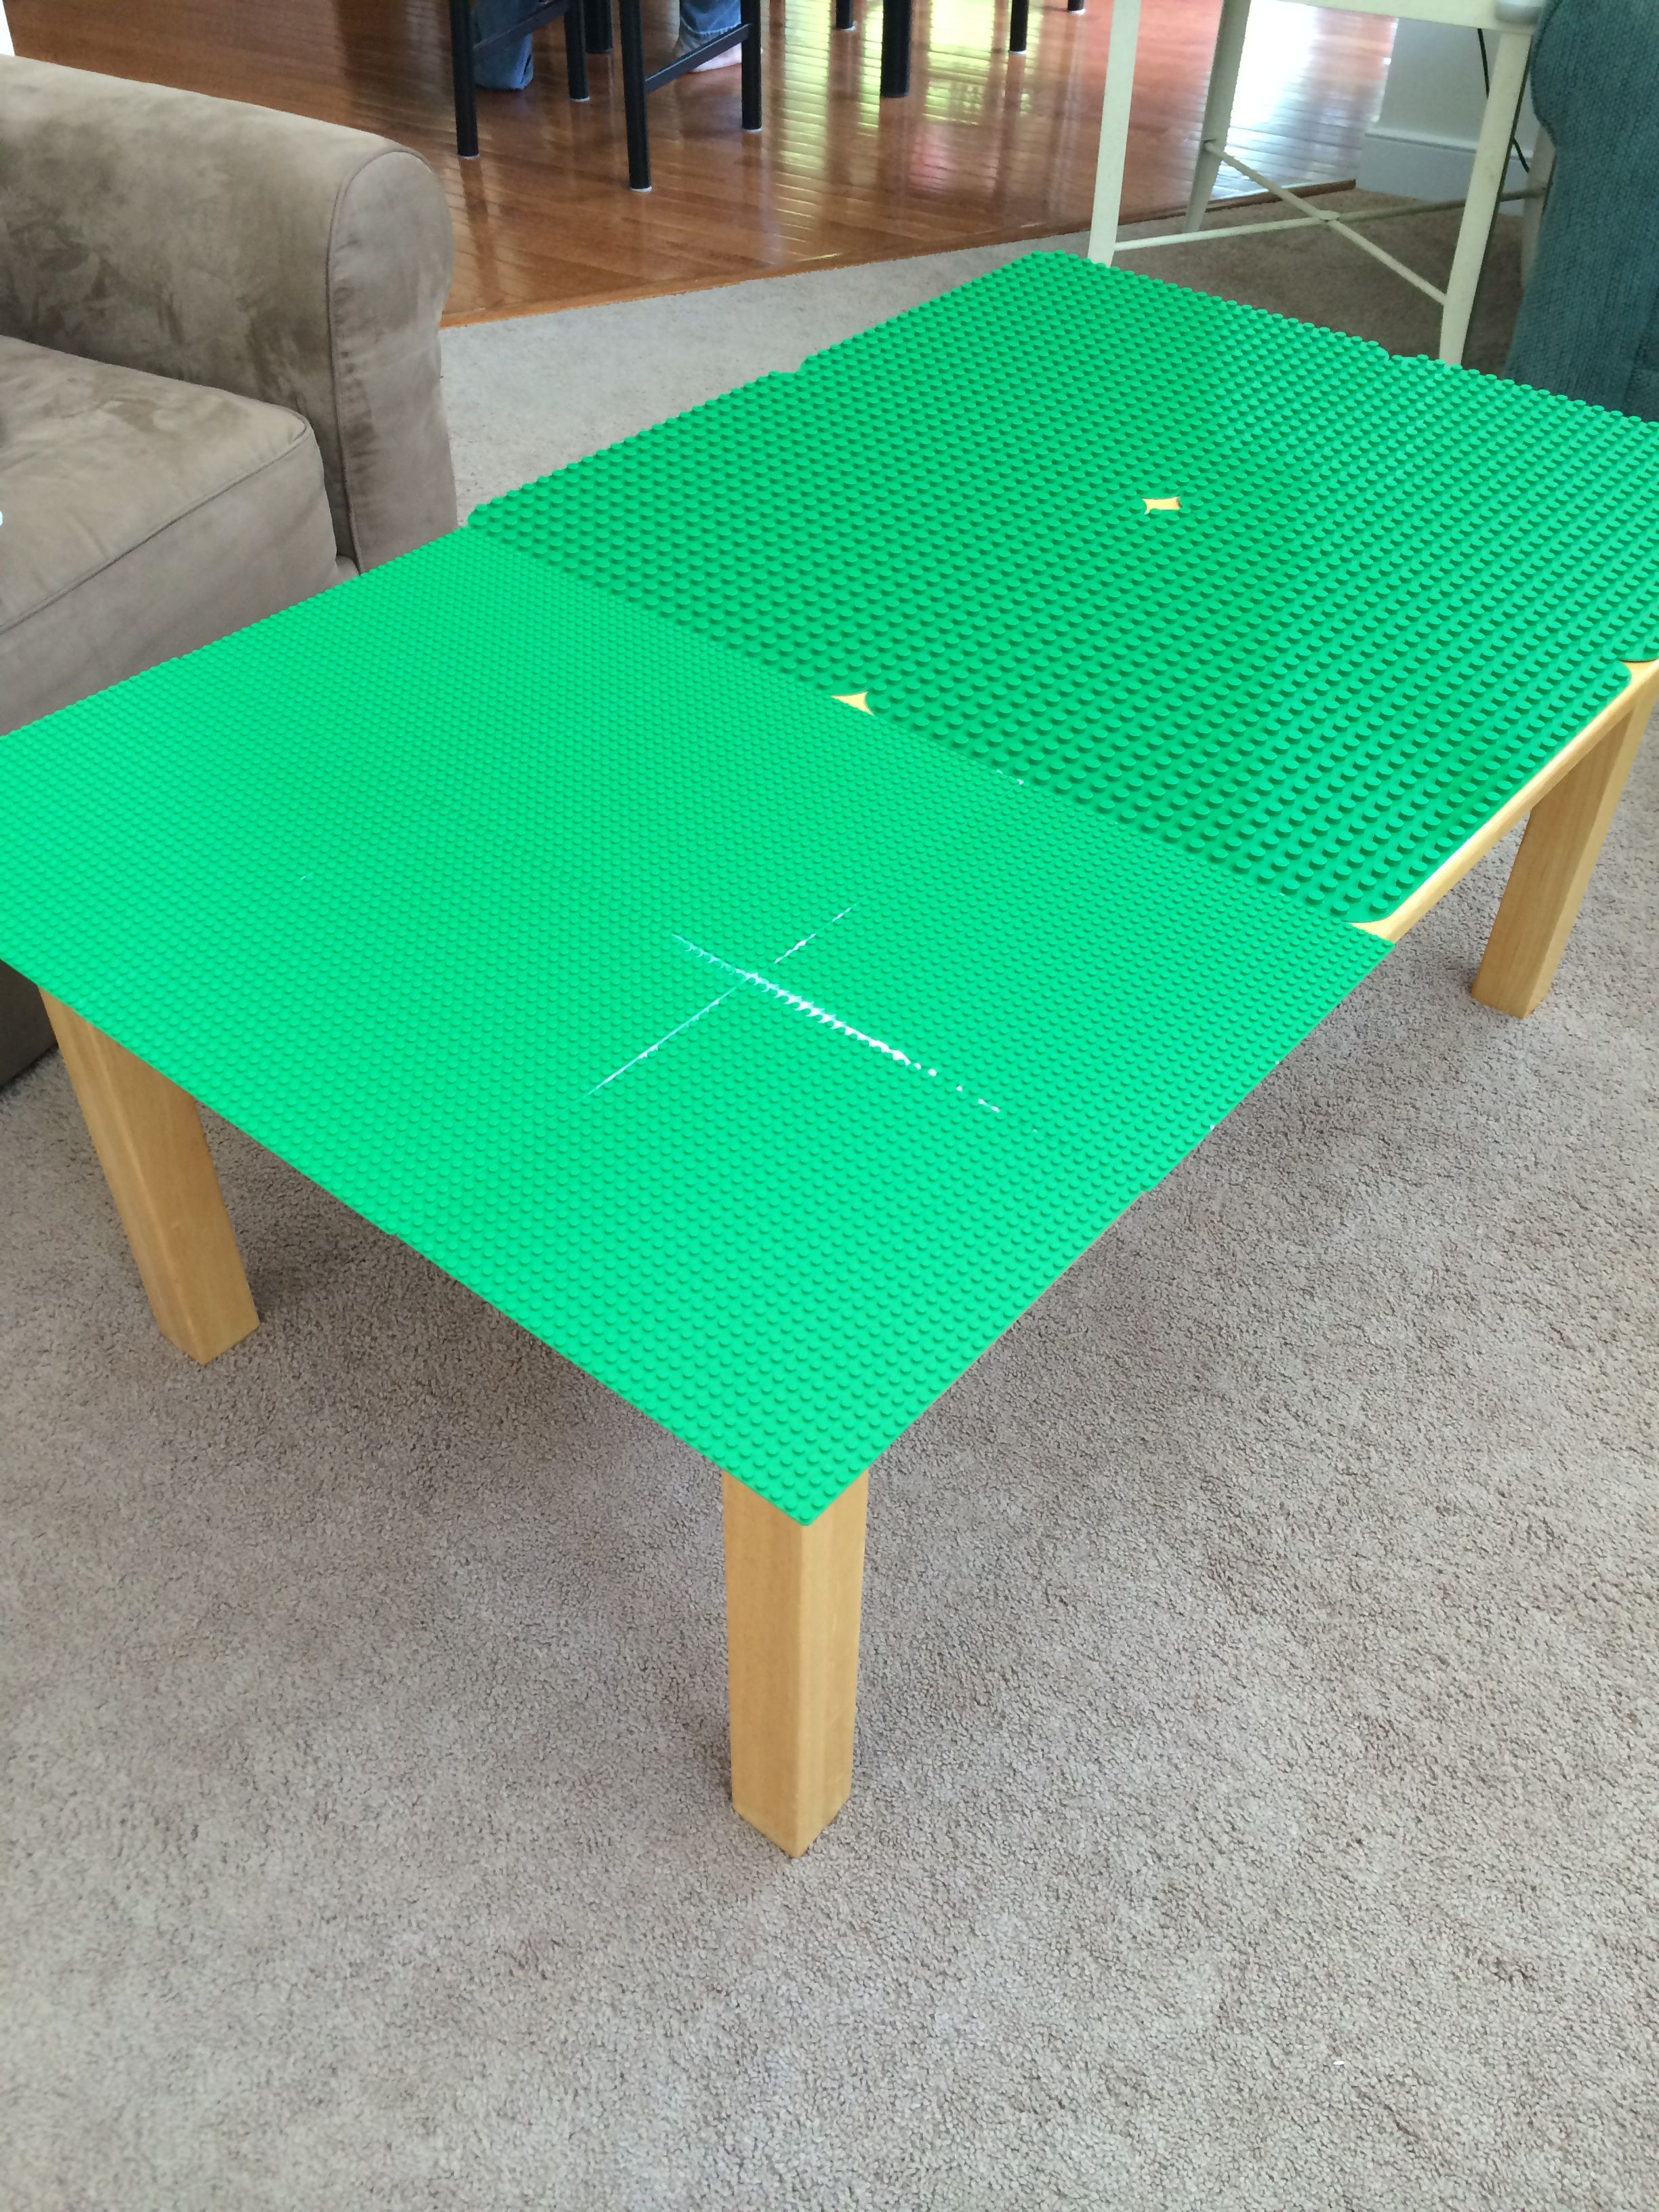 toys r us lego table and chairs modern dining a i made for my daughter 10 from yard